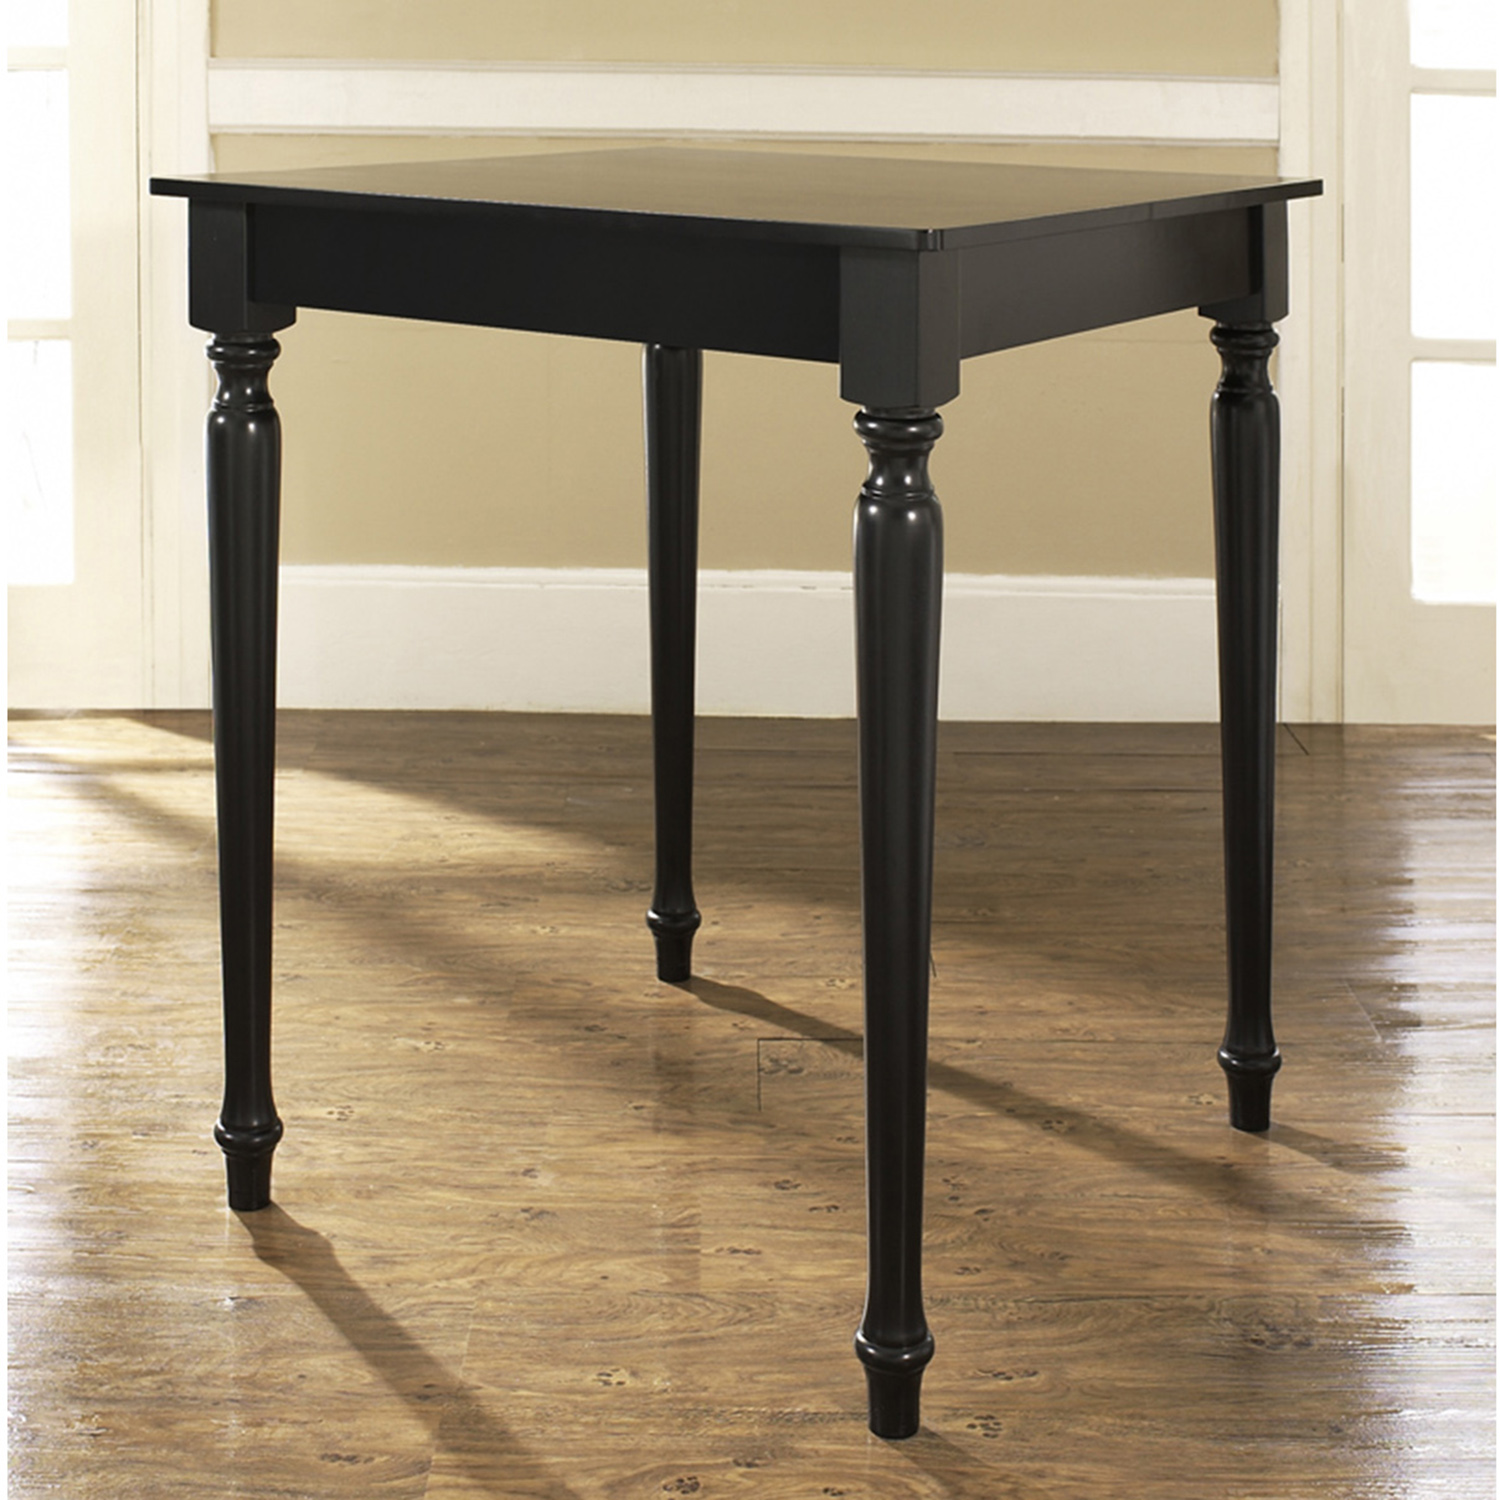 Turned Leg Pub Table - Black - CROS-KD20003BK